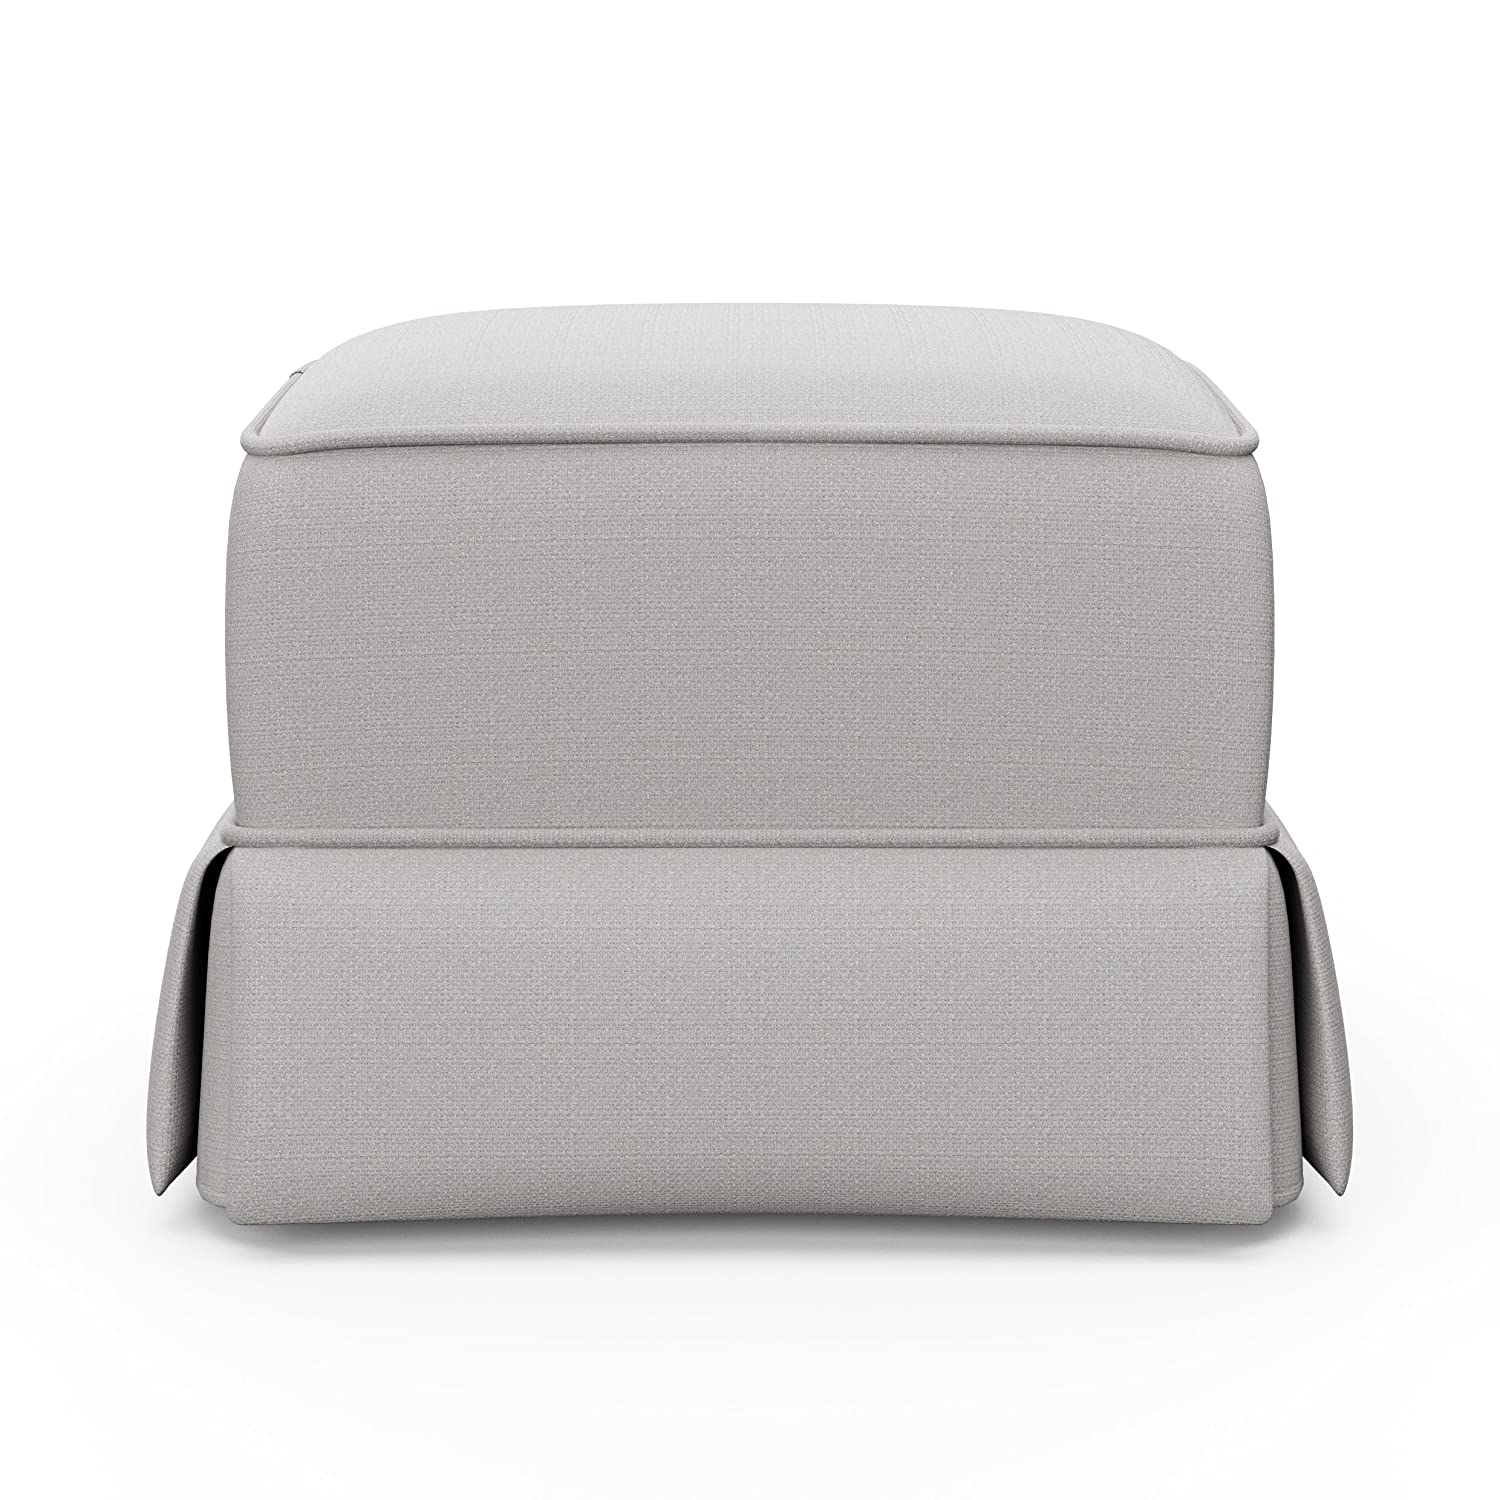 Storkcraft Avalon Upholstered Ottoman, Midnight Gray 06562-52U